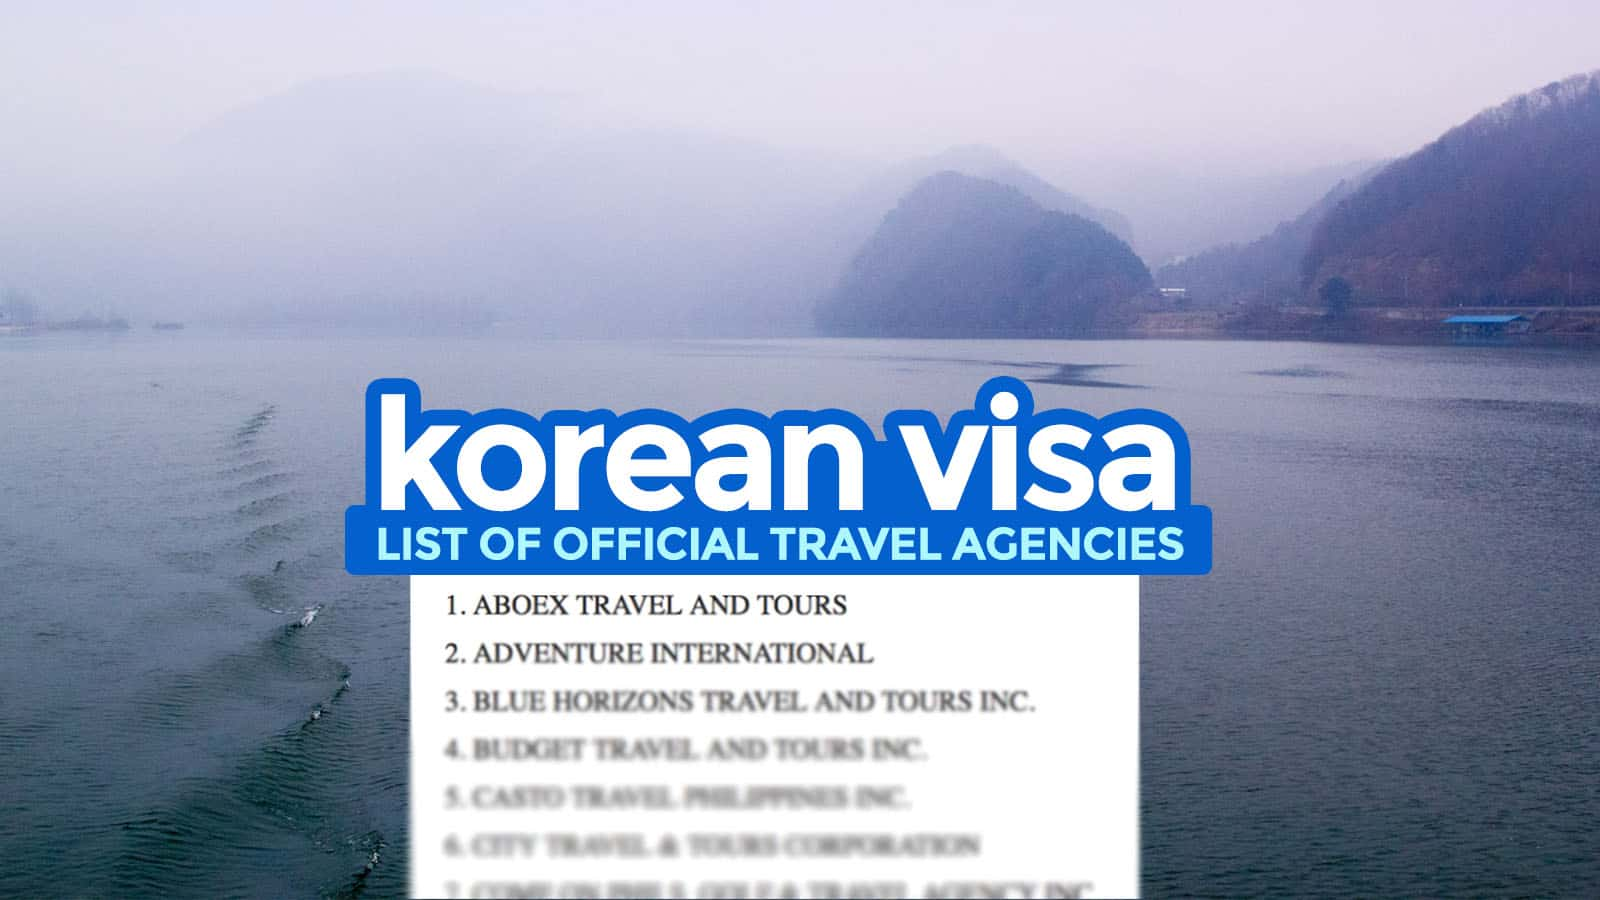 KOREAN VISA: LIST OF TRAVEL AGENCIES Accredited by the